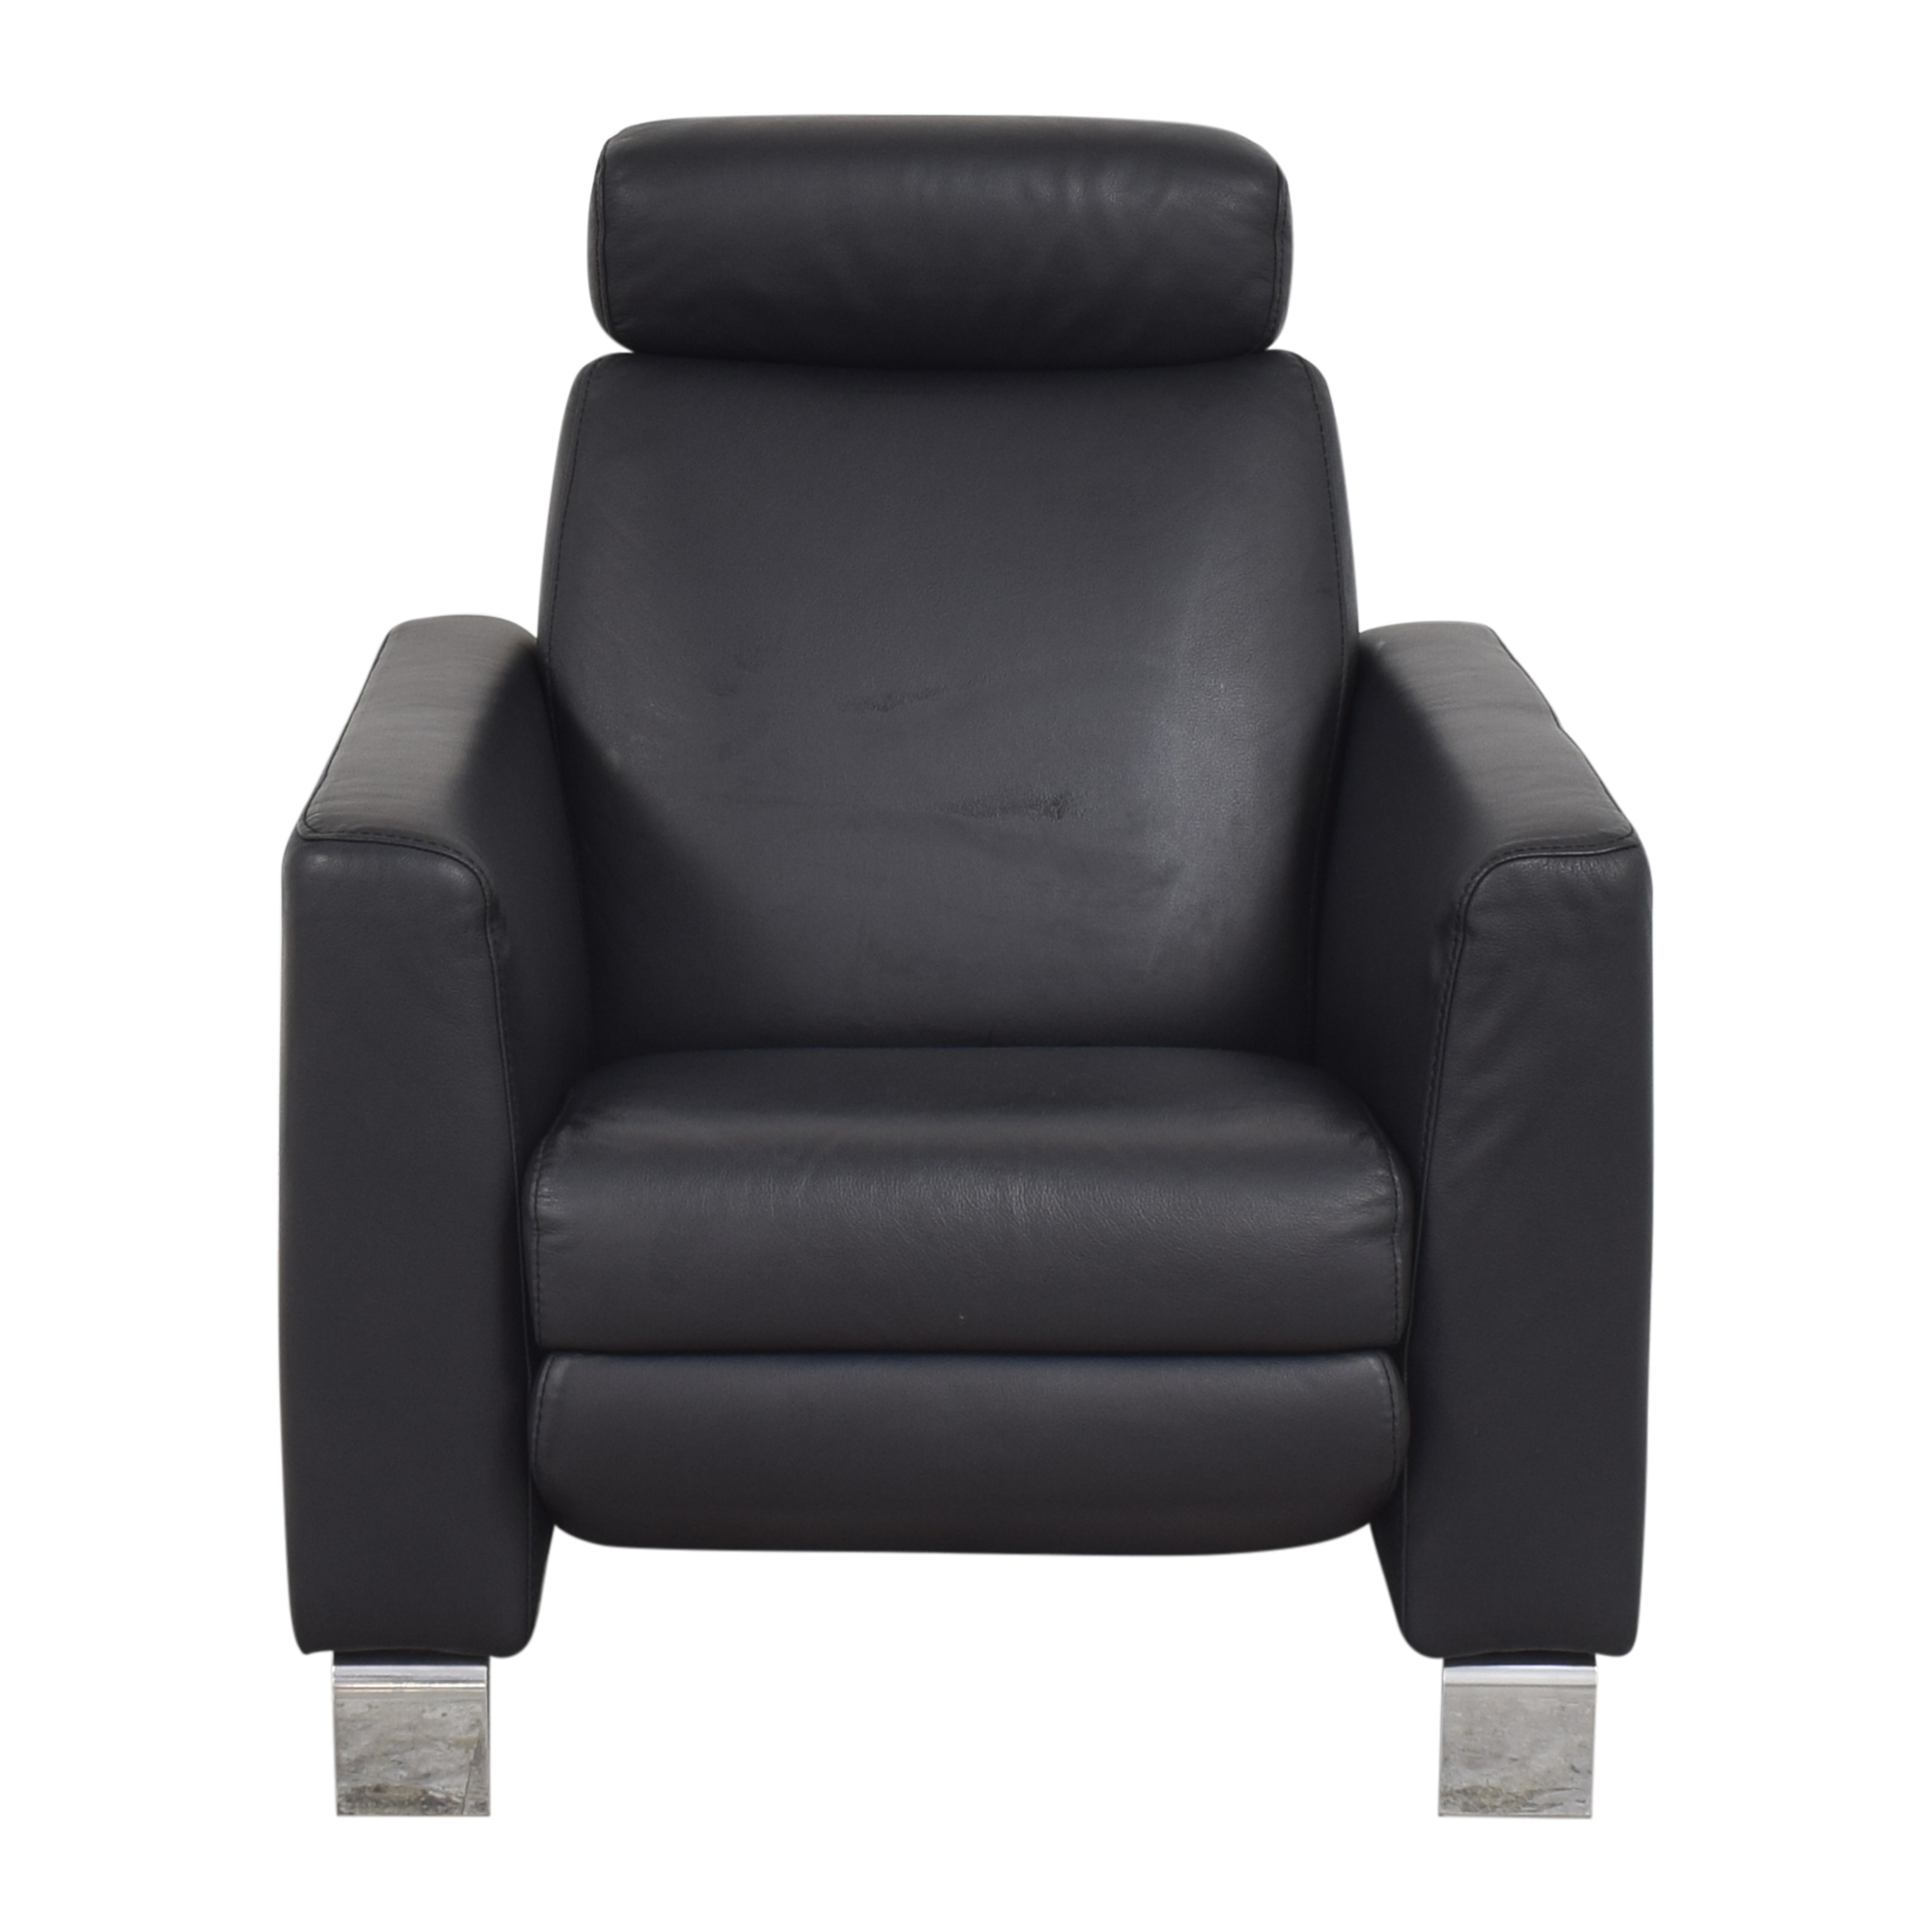 Modern Reclining Armchair used